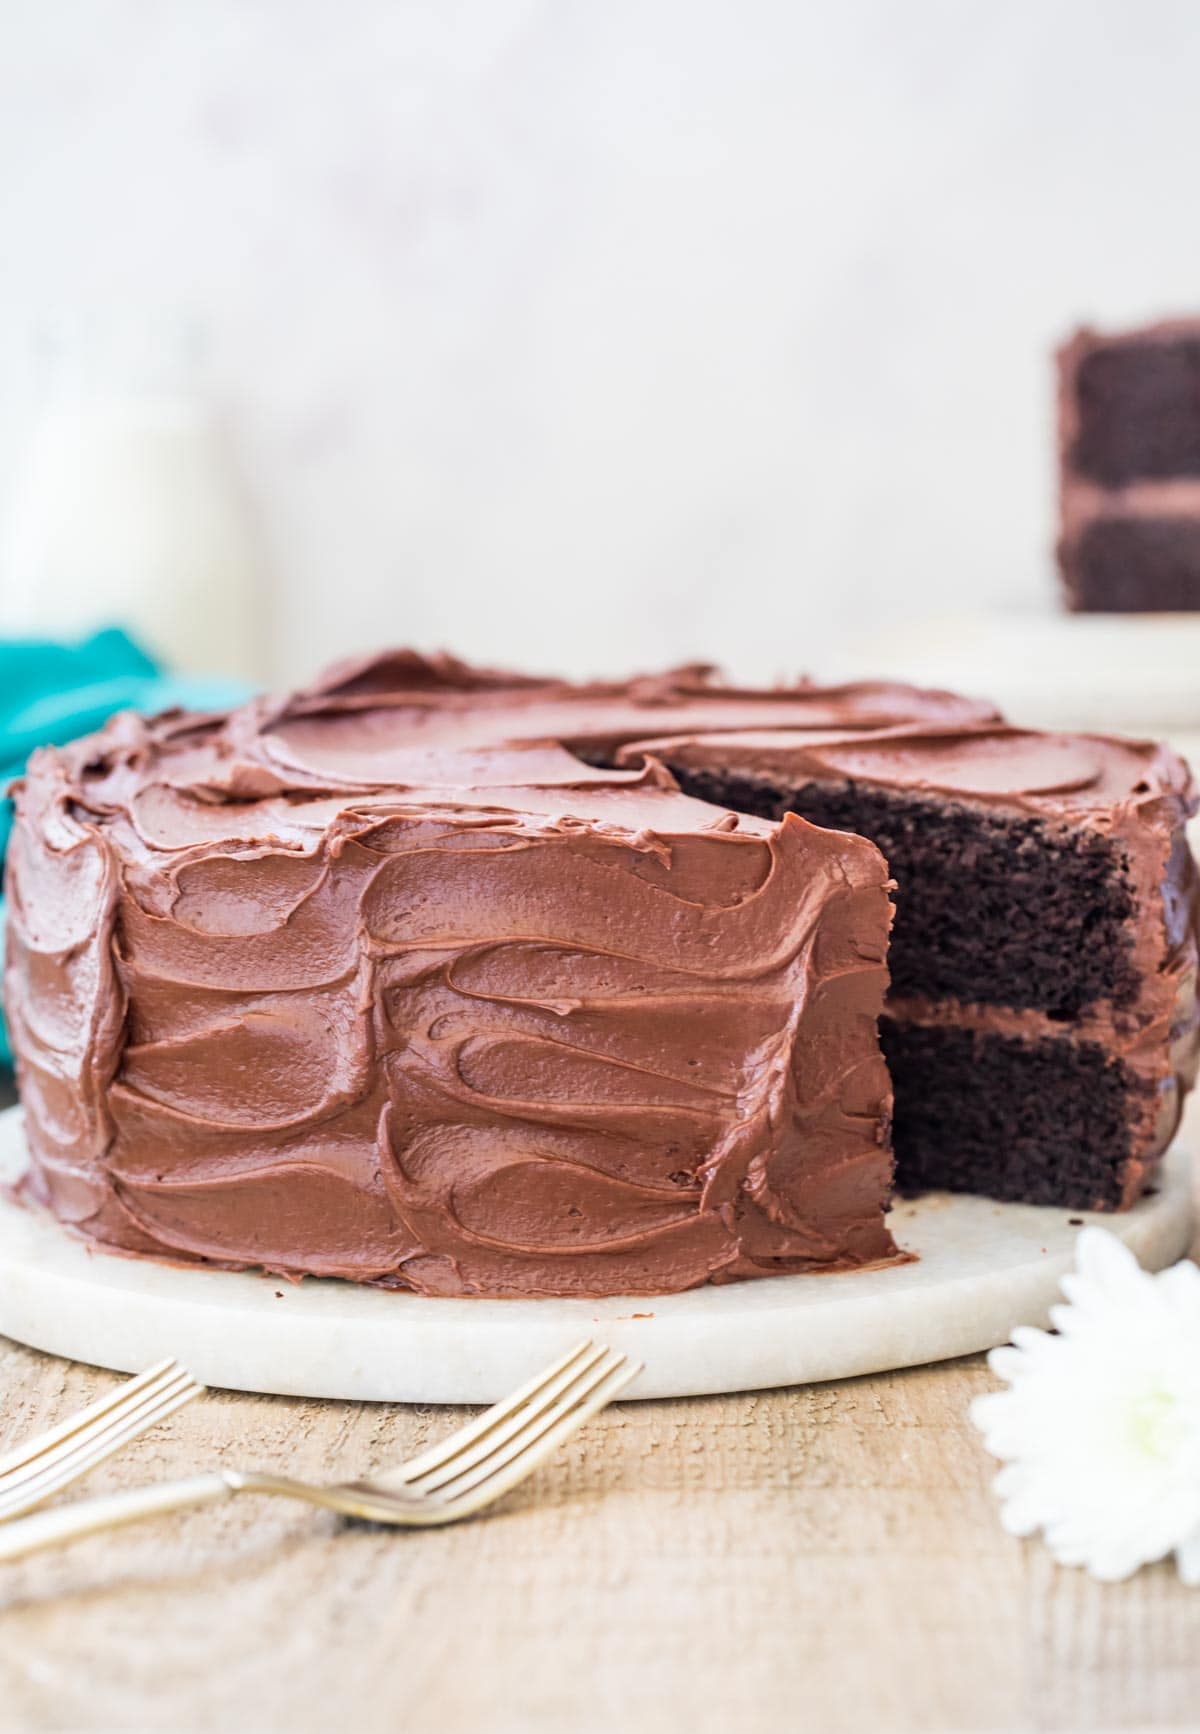 Devil's food cake with a slice taken out